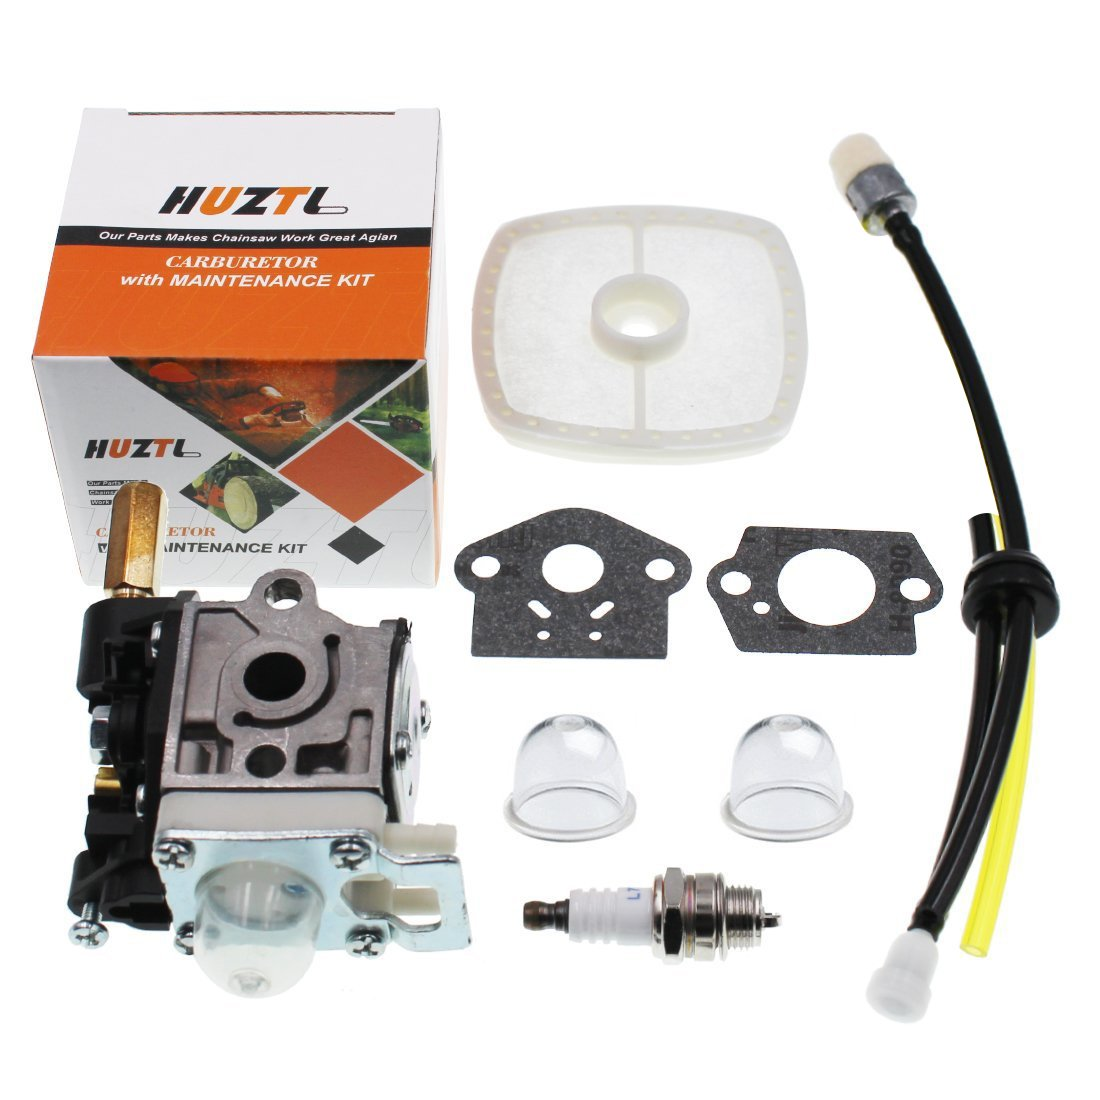 HUZTL Carburetor for Echo GT200 GT201i HC150 HC151 PE200 PE201 PPF210 PPF211 SRM210 SRM211 Trimmer Brushcutter with Fuel Maintenance Kit Spark Plug by HUZTL